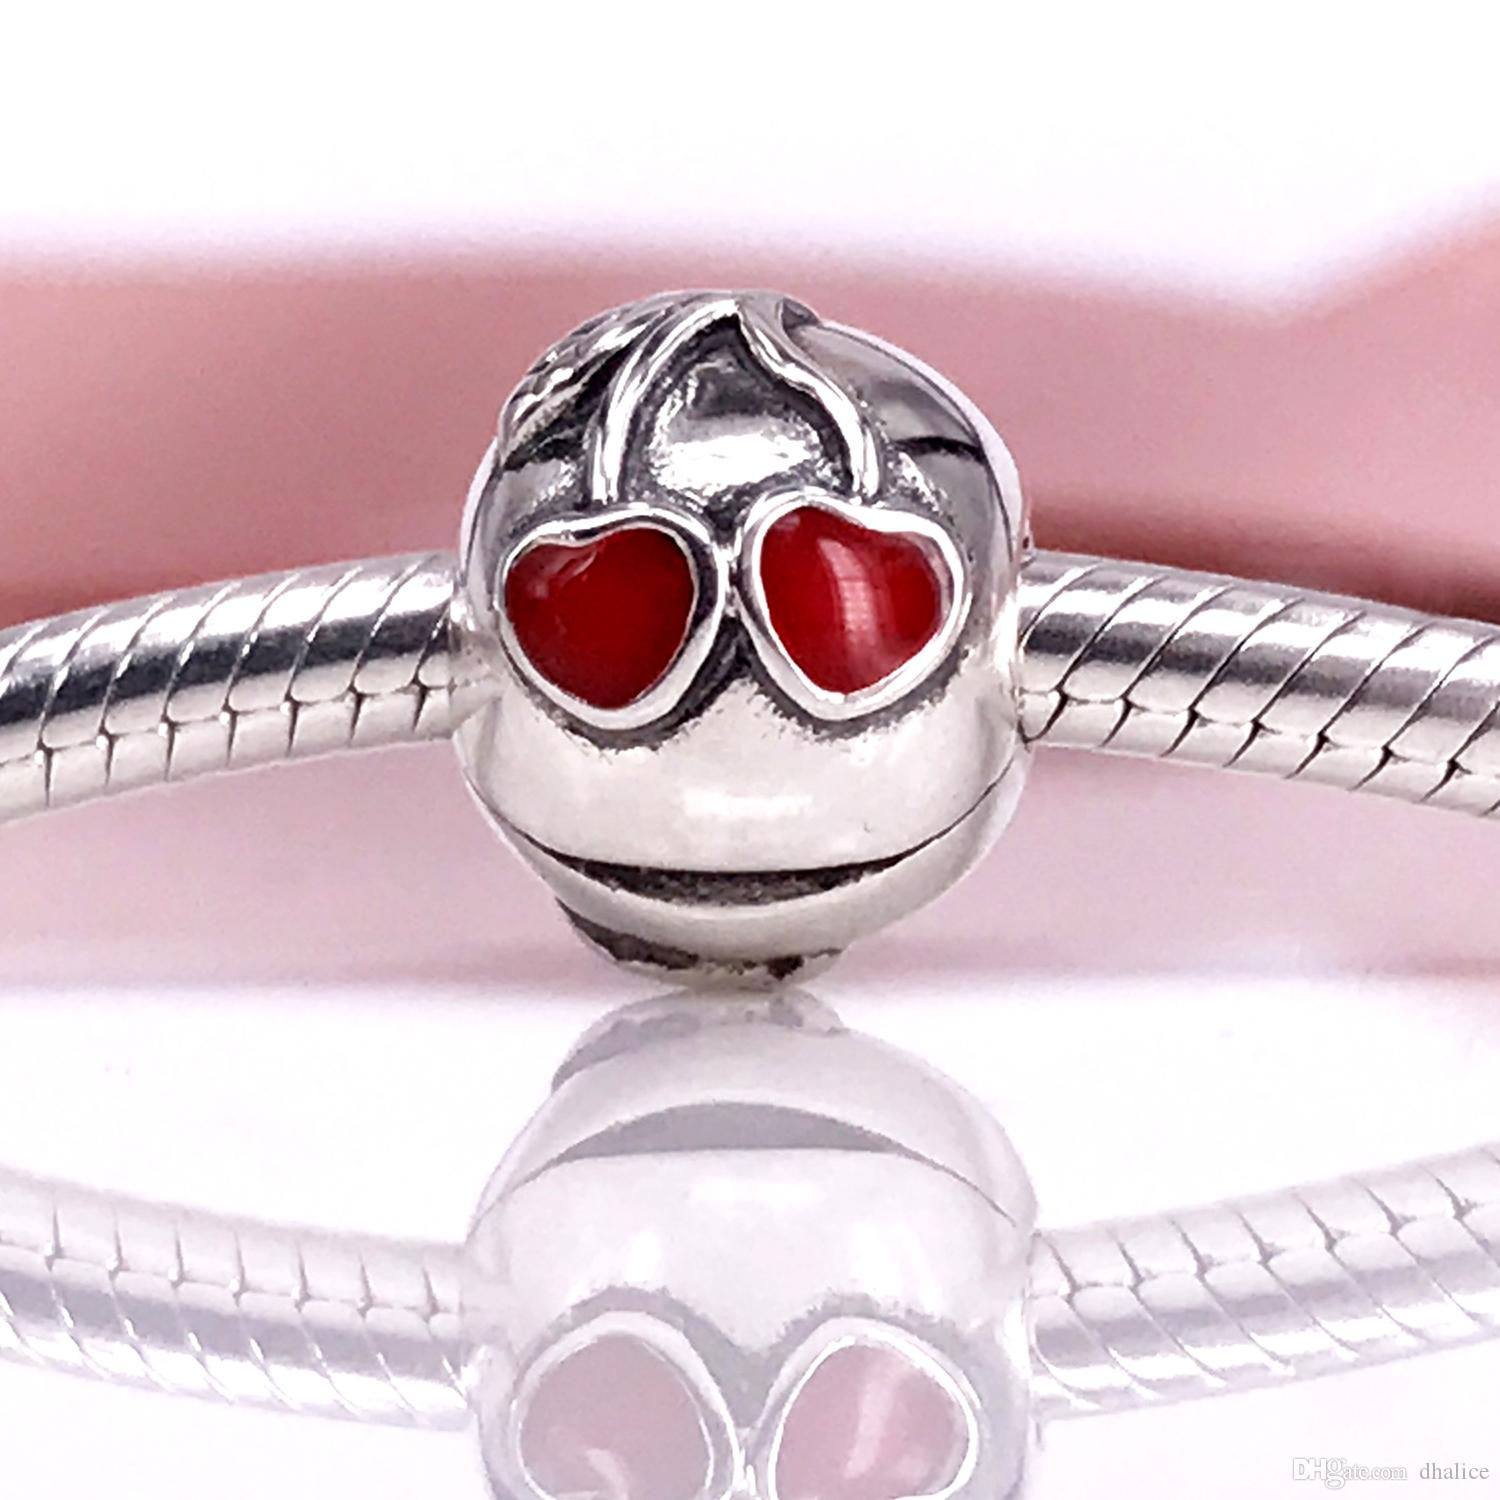 692aba754 European Style Jewelry 925 Sterling Silve Bead Cherries, Red Enamel  Clasp&Clips Charms Fit DIY Bracelet 791093EN39 European Style Jewelry 925  Sterling Silve ...